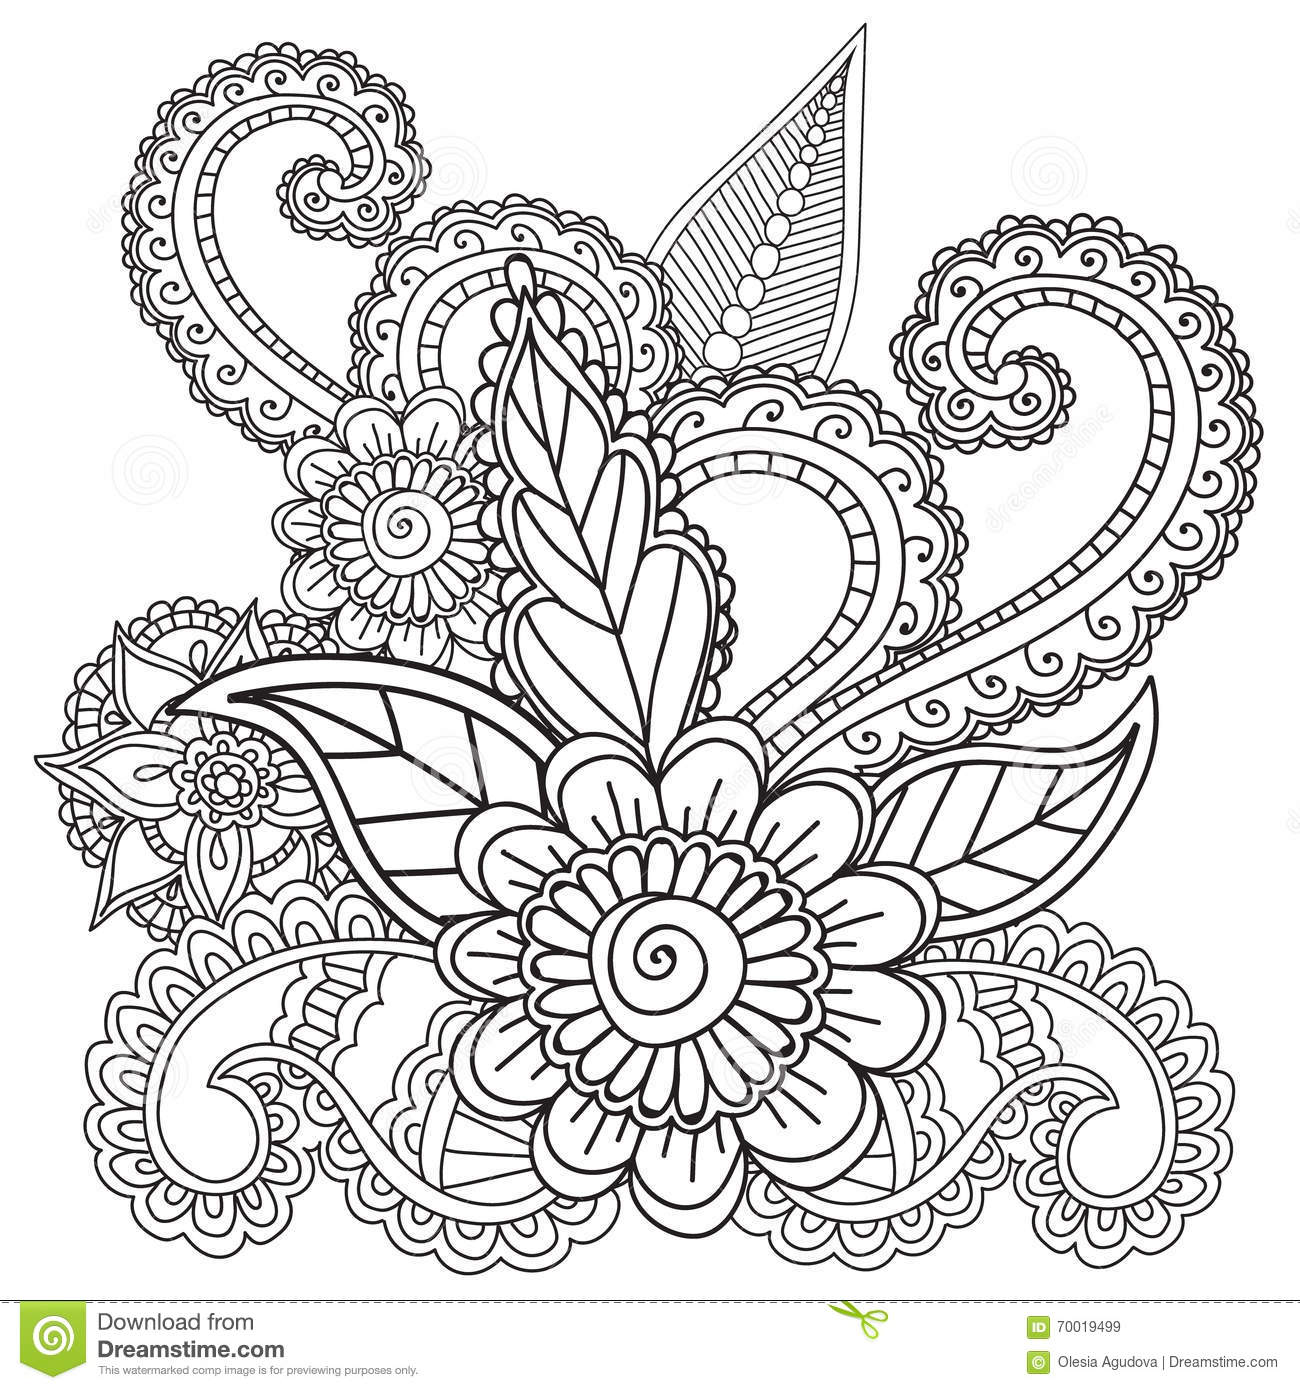 Coloring Pages For Adults. Henna Mehndi Doodles Abstract Floral ...